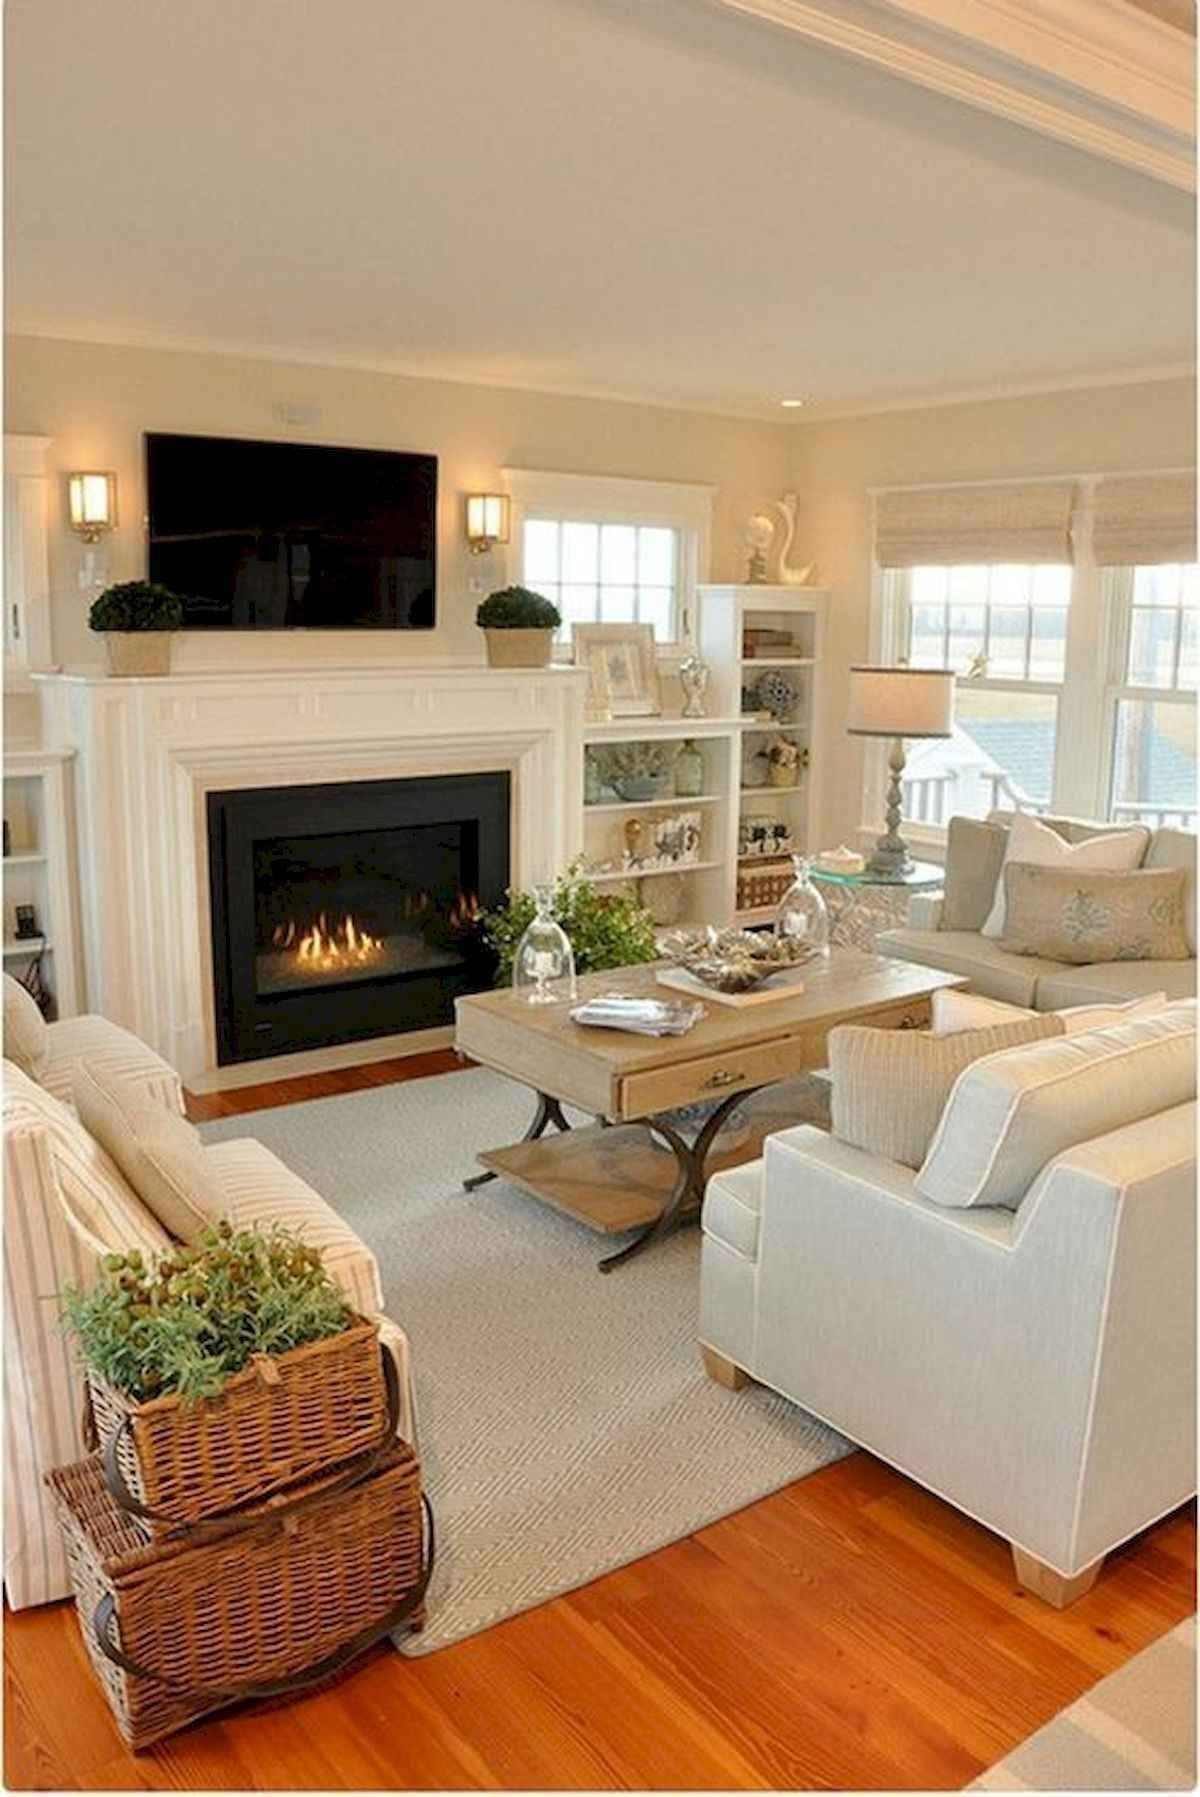 30 Elegant Farmhouse Living Room Decor Ideas 1  Roomadness  Small Modern Living Room